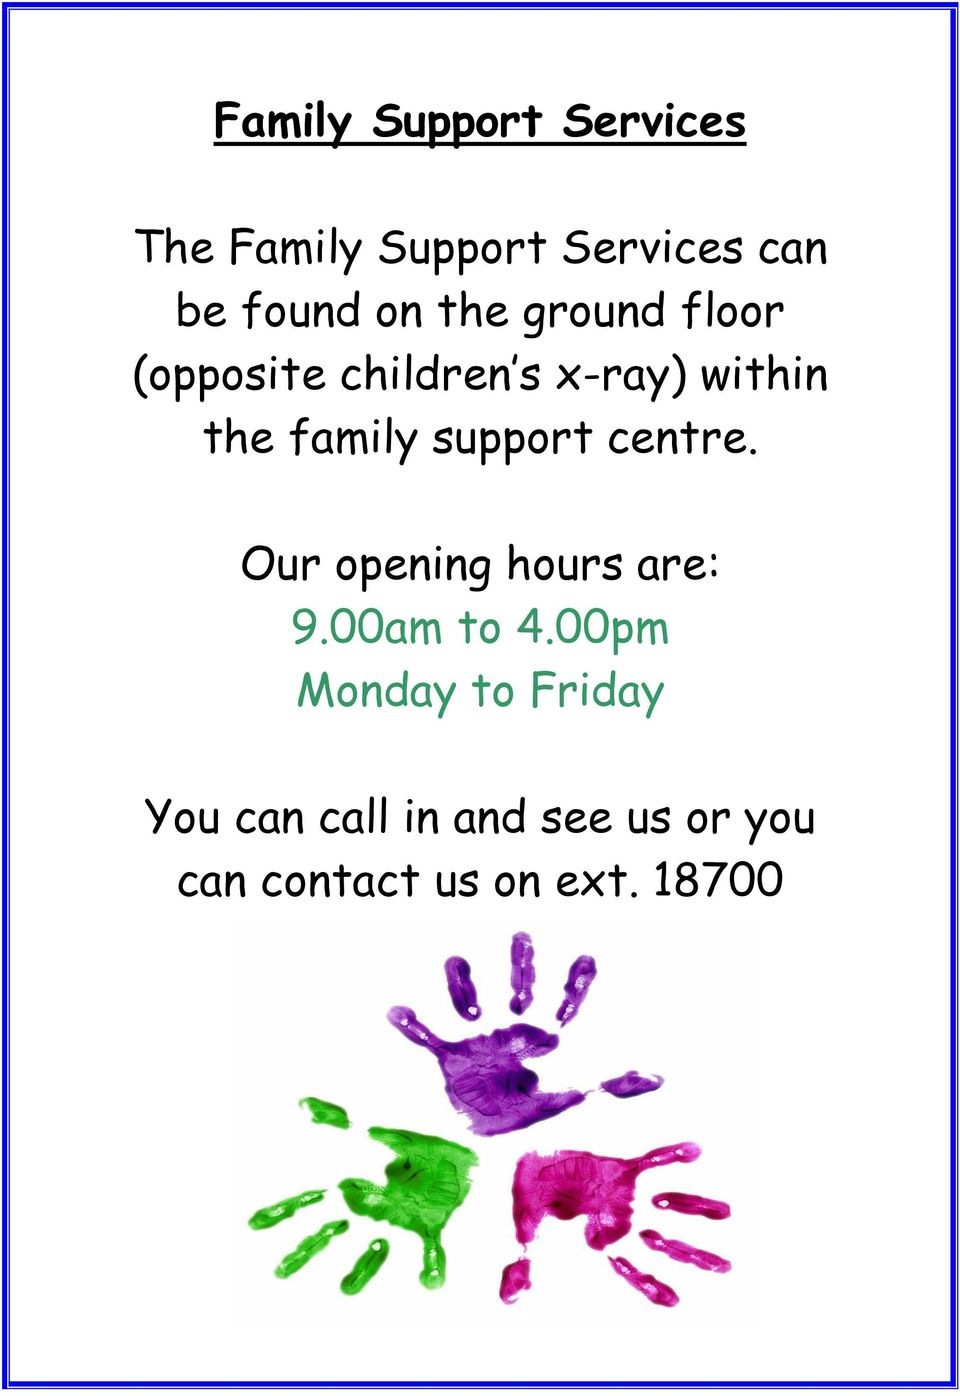 support centre. Our opening hours are: 9.00am to 4.